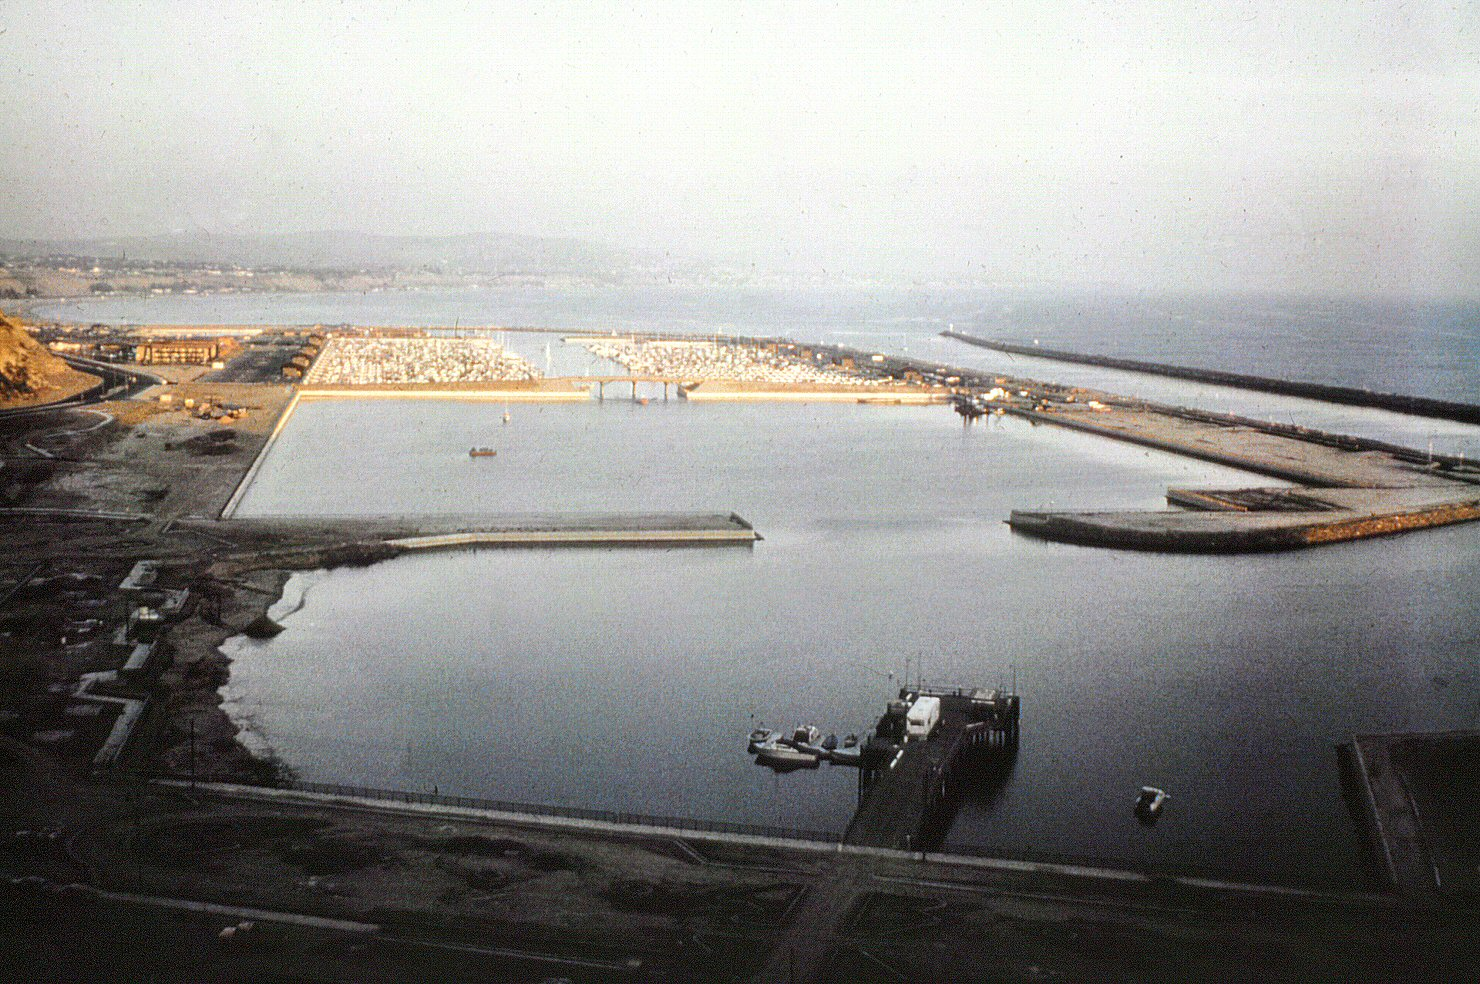 Dana Point Harbor as a work in progress, circa 1971. Courtesy of the Orange County Archives.